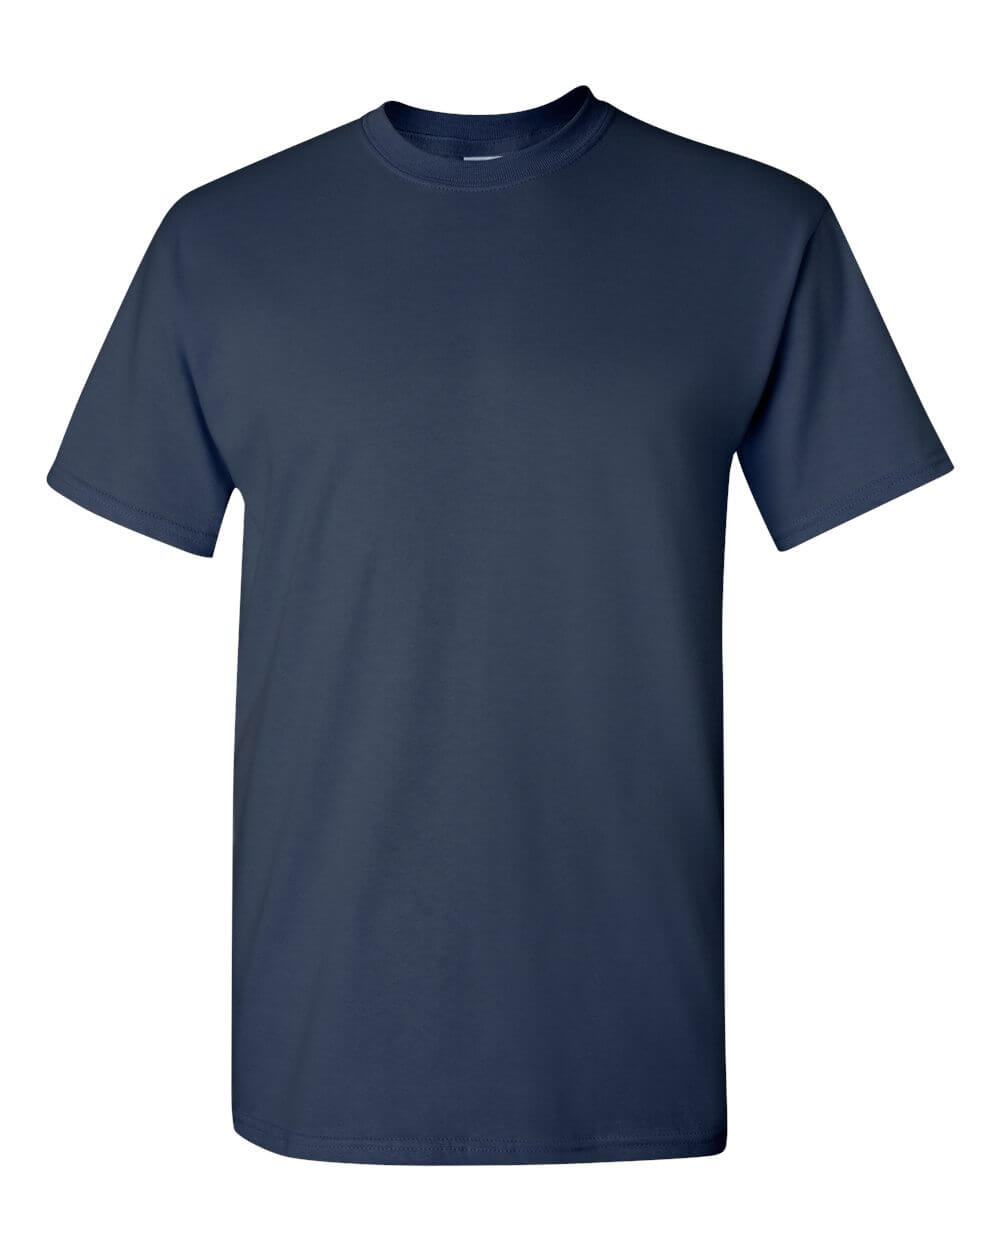 Gildan_5000_Navy Blue Custom T Shirts